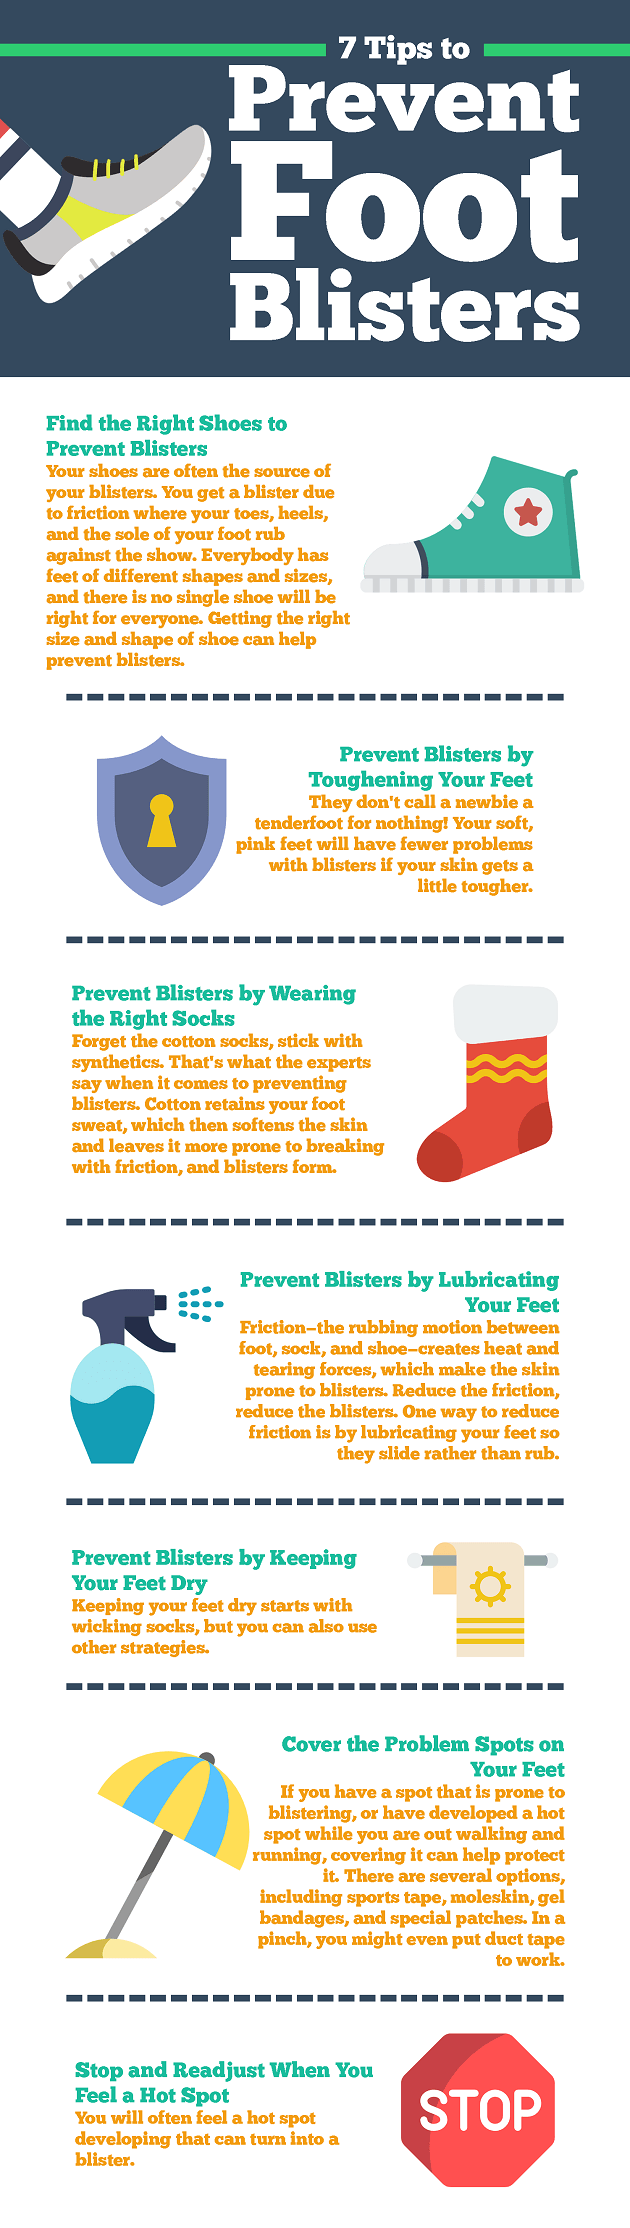 Prevent Foot Blisters